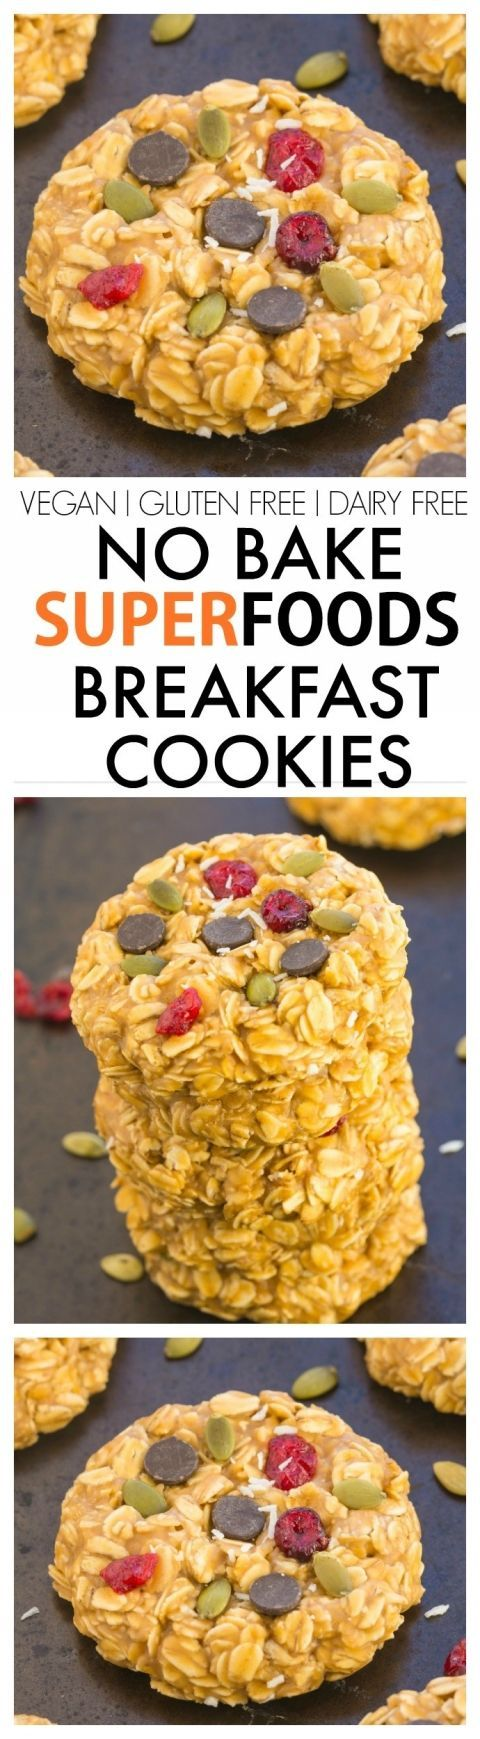 Healthy No Bake Superfoods Breakfast Cookies- Ready in just 5 minutes and packed full of healthy ingredients to keep you satisfied for hours! {vegan, gluten free, refined sugar free recipe}